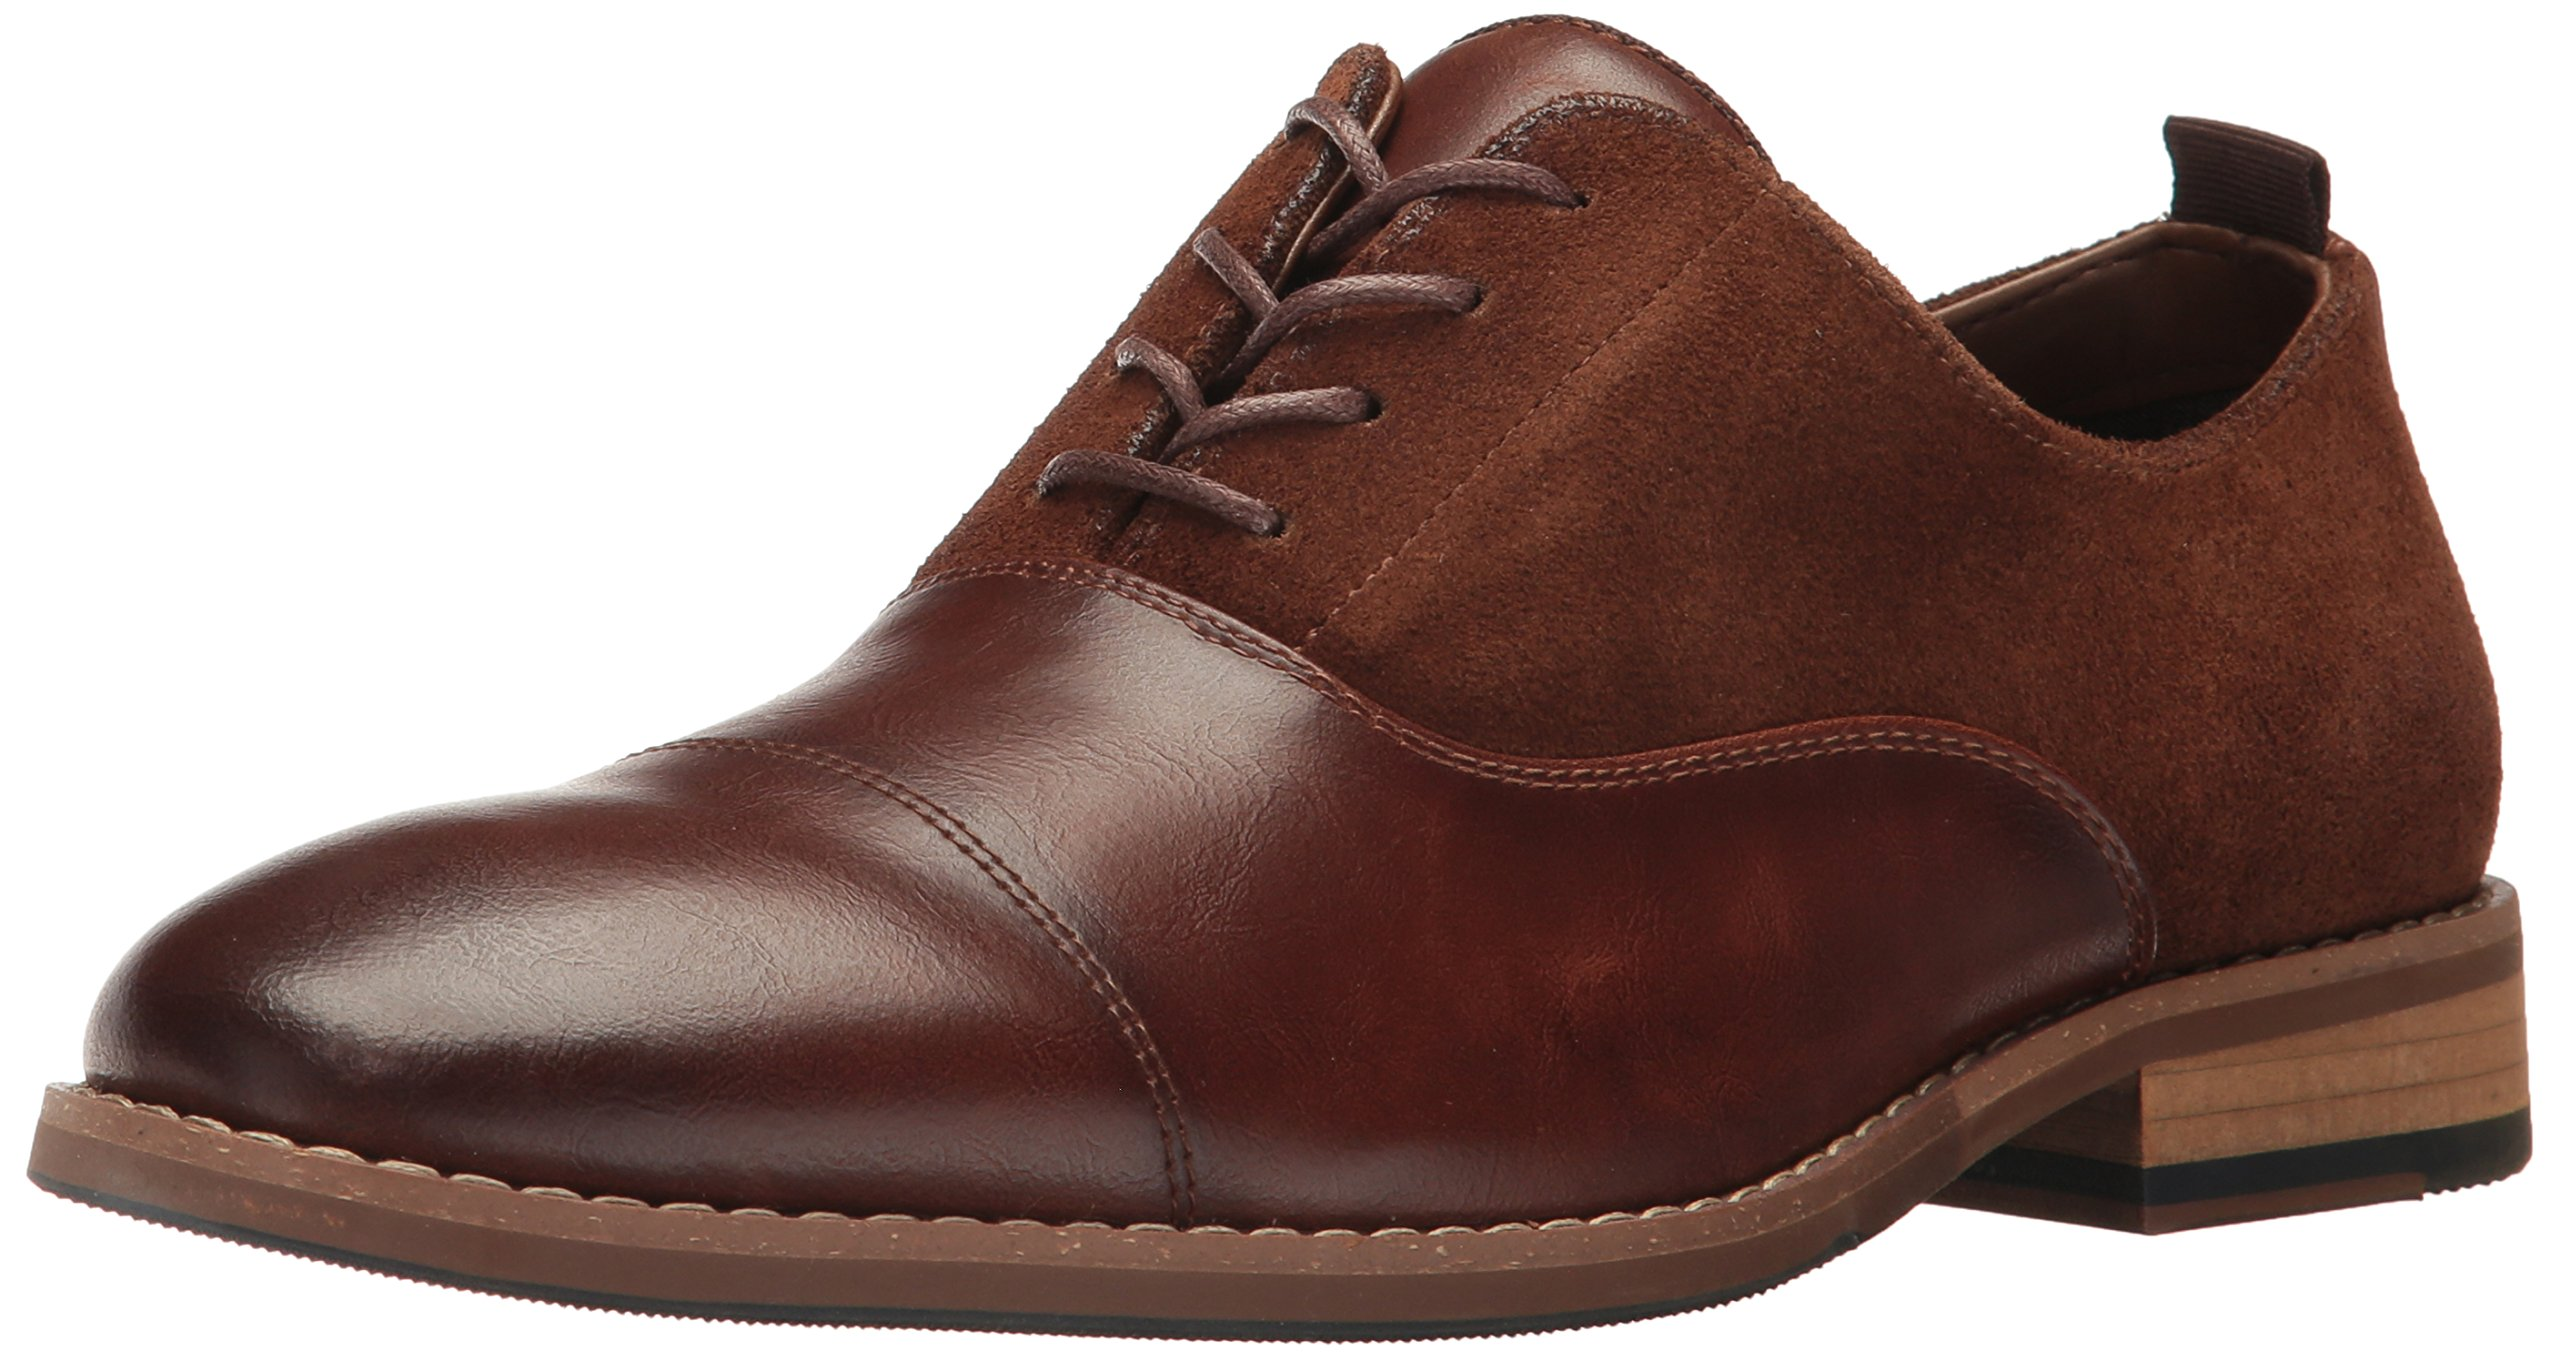 Call It Spring Men's Thaewet Oxford, Brown, 7.5 D US